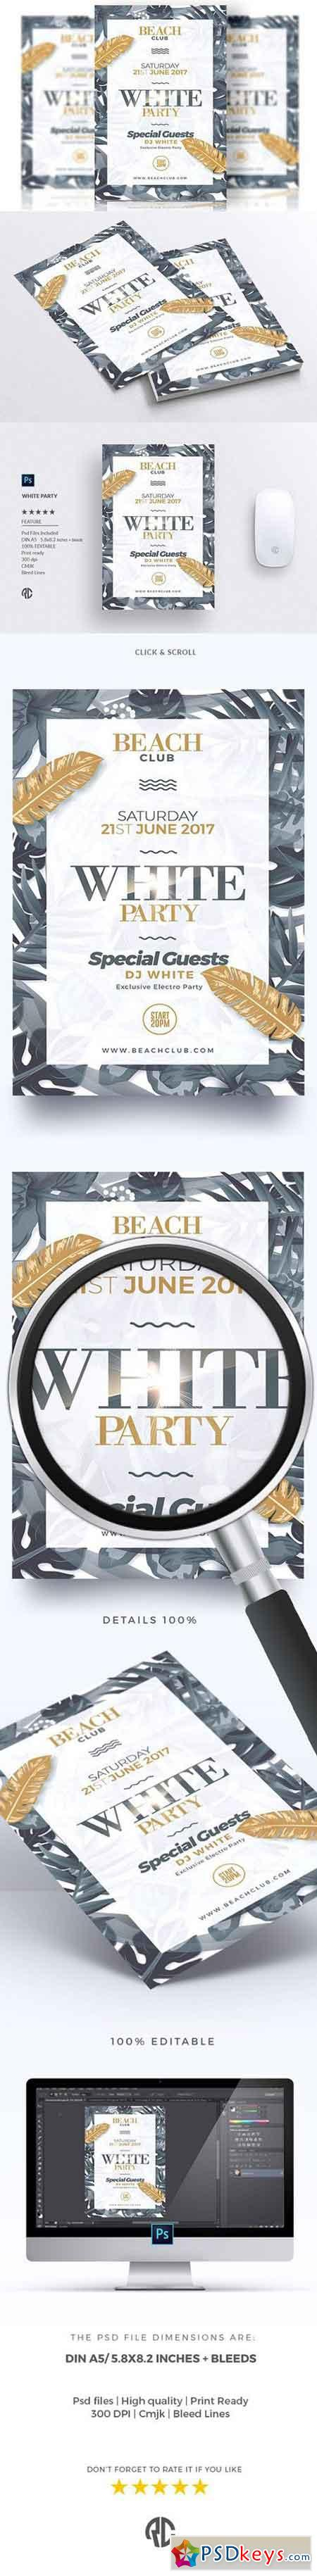 White Party - Flyer Template 1673490